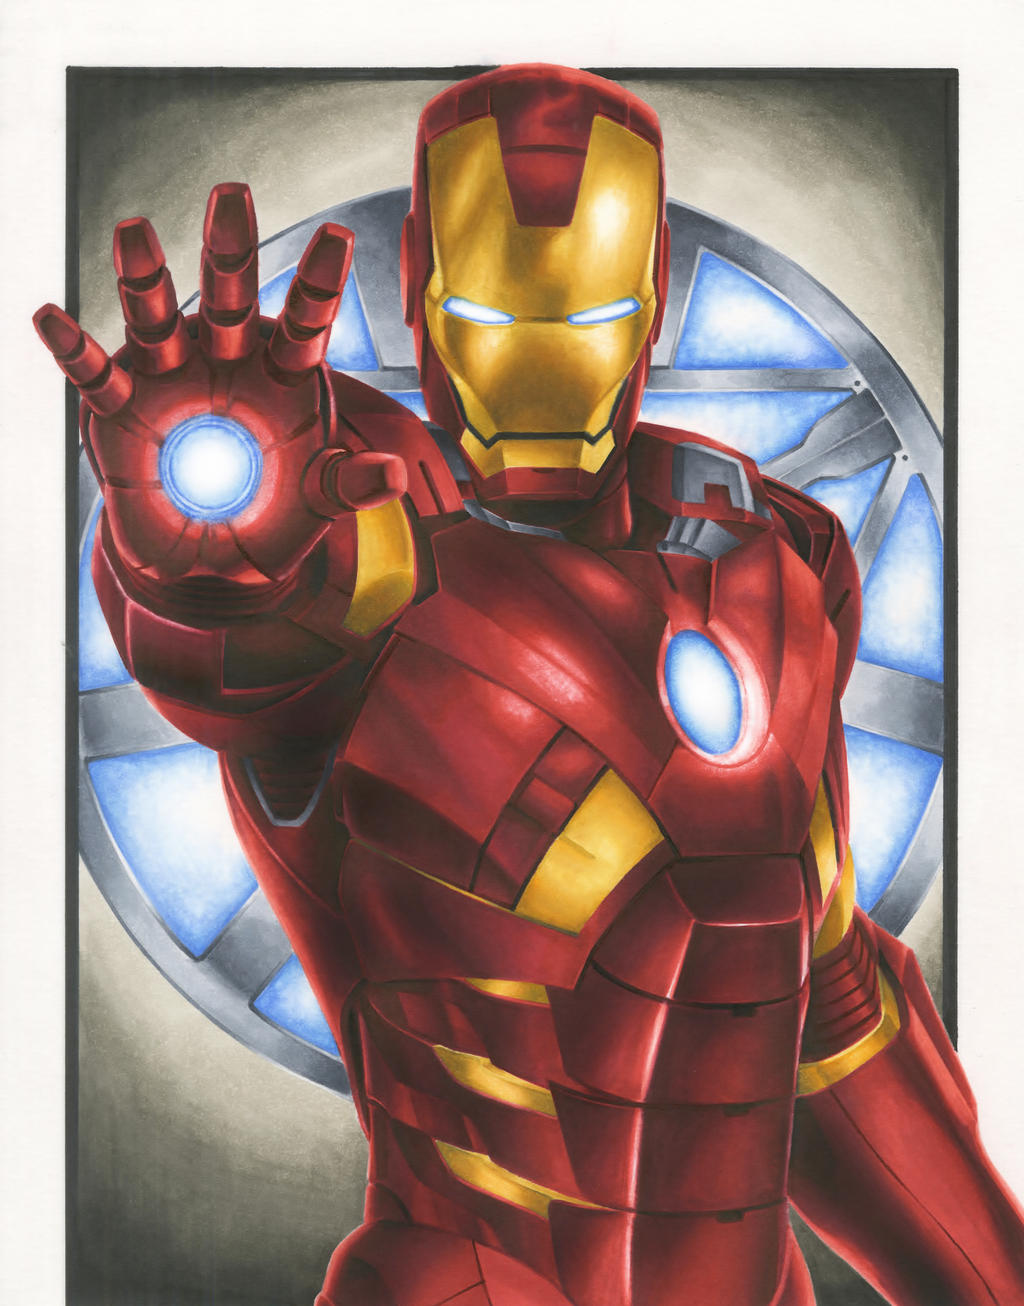 Iron man animated avengers - photo#4